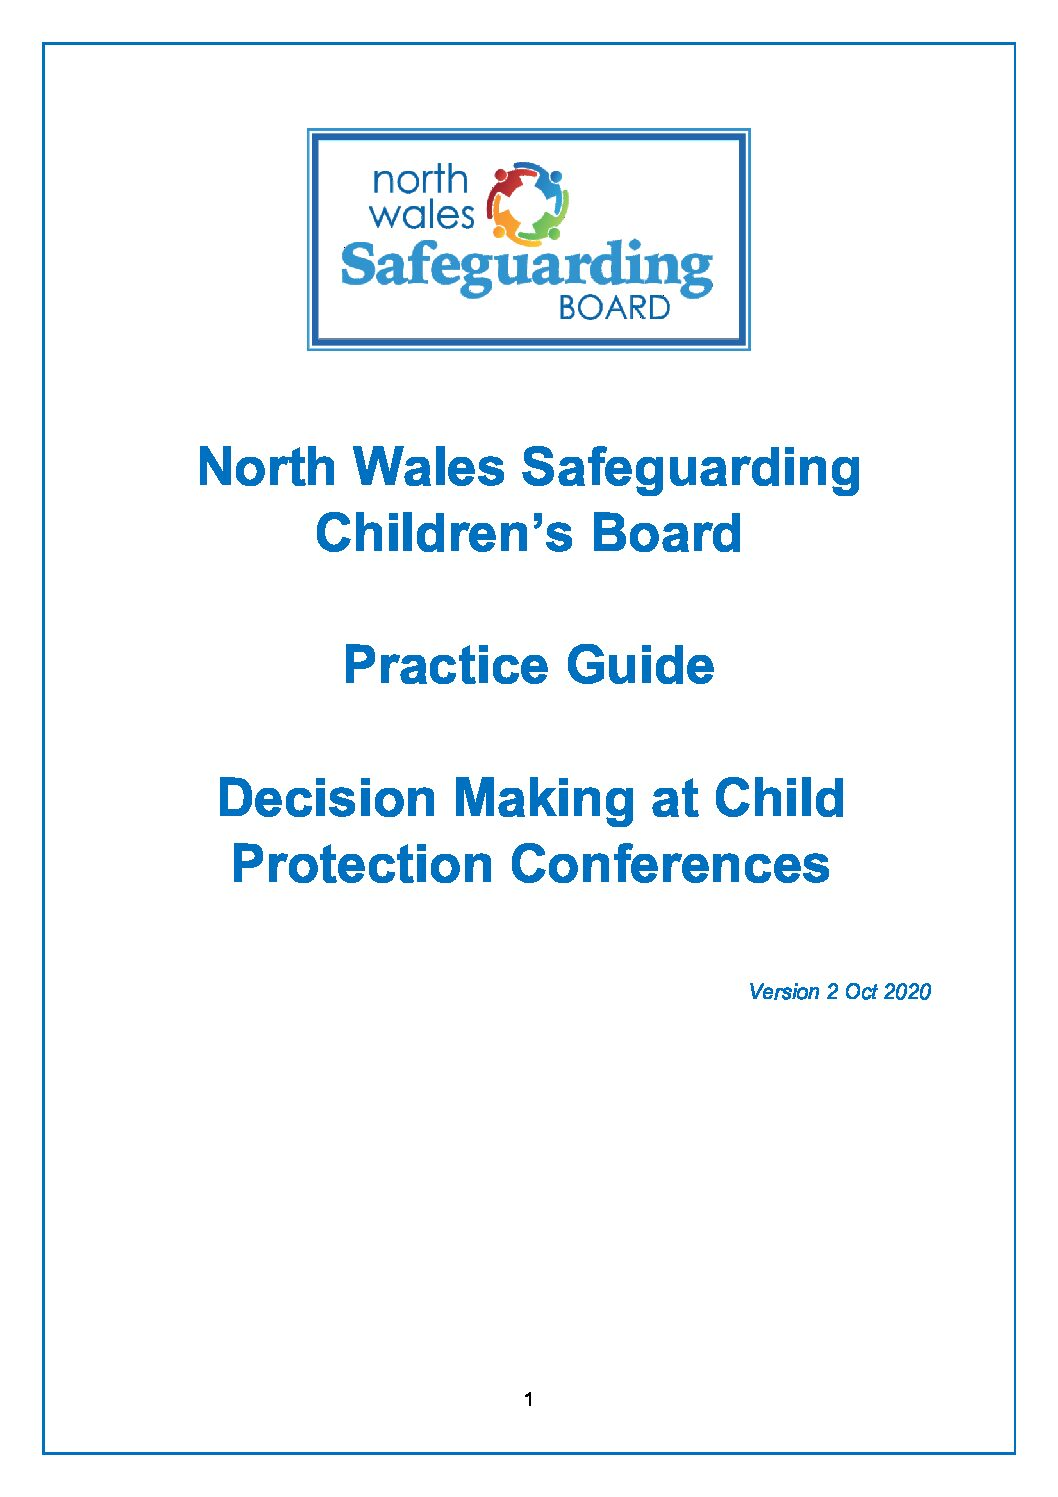 North Wales Practice Guide Decision Making at Child Protection Conferences